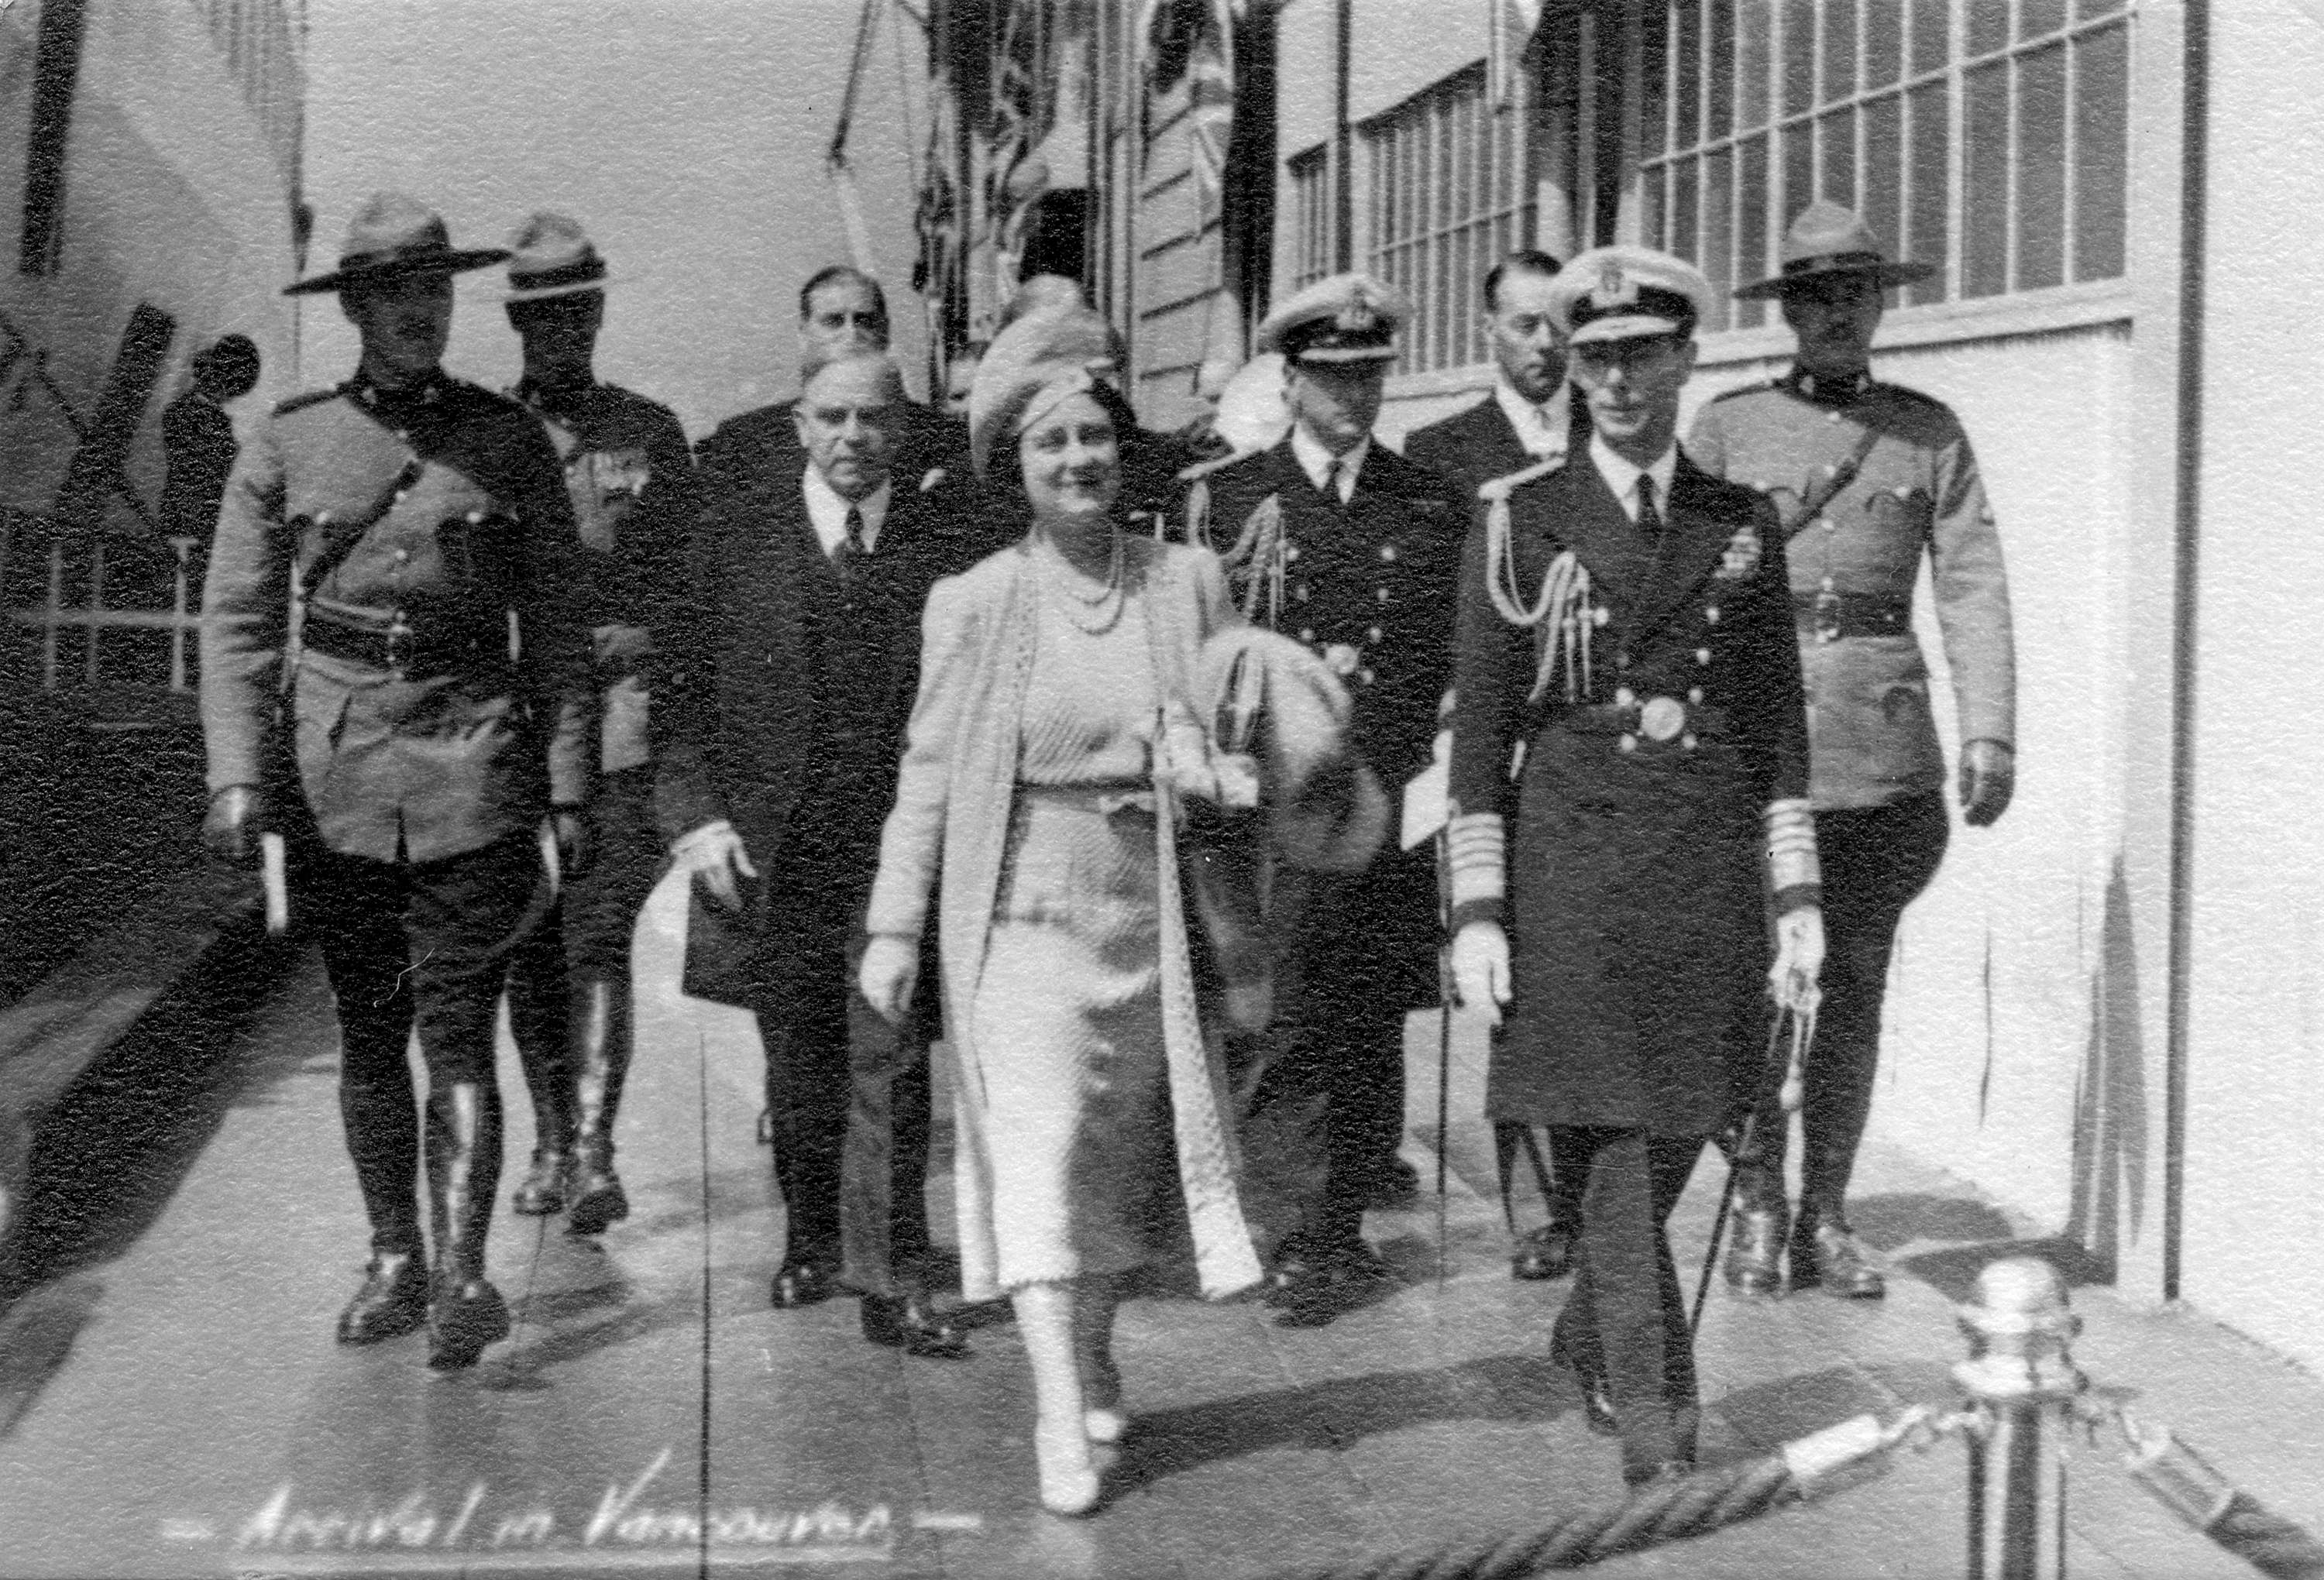 King George VI, Queen Elizabeth and William Lyon Mackenzie King at the Canadian National Railway dock in 1939 (Public domain)